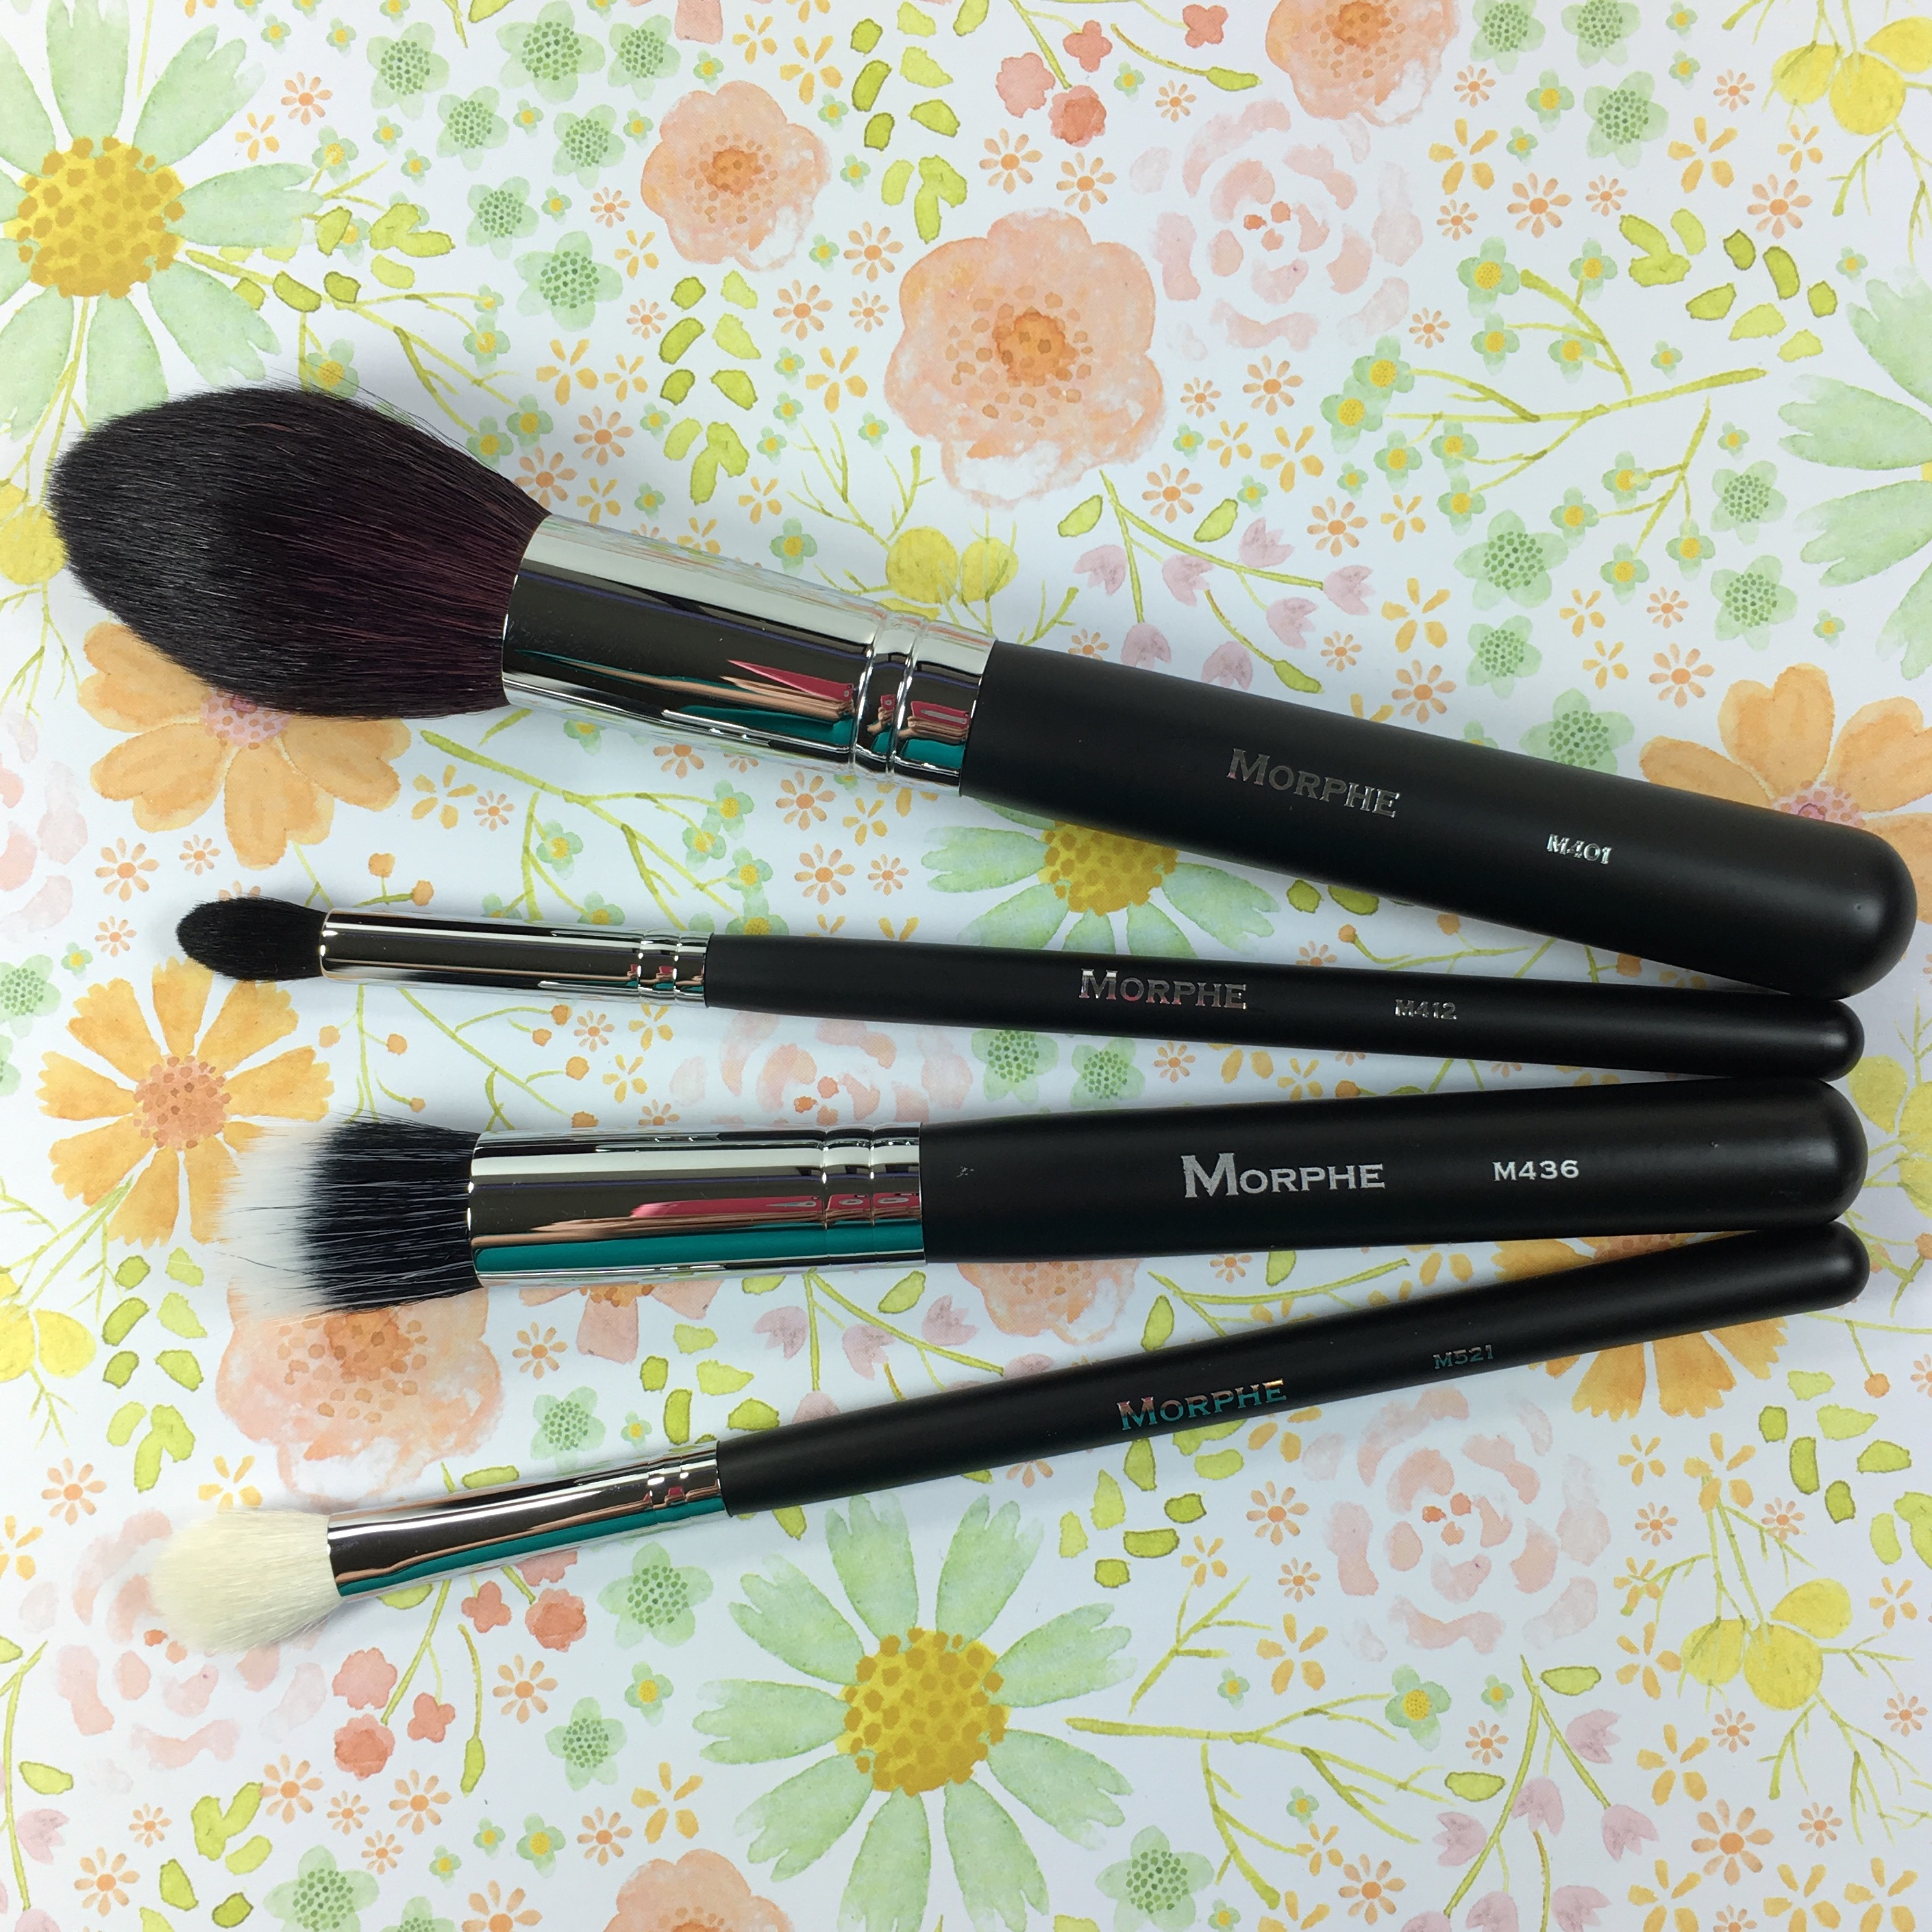 MorpheMe Brush Club March 2017 Subscription Box Review + Free Brush Coupon!